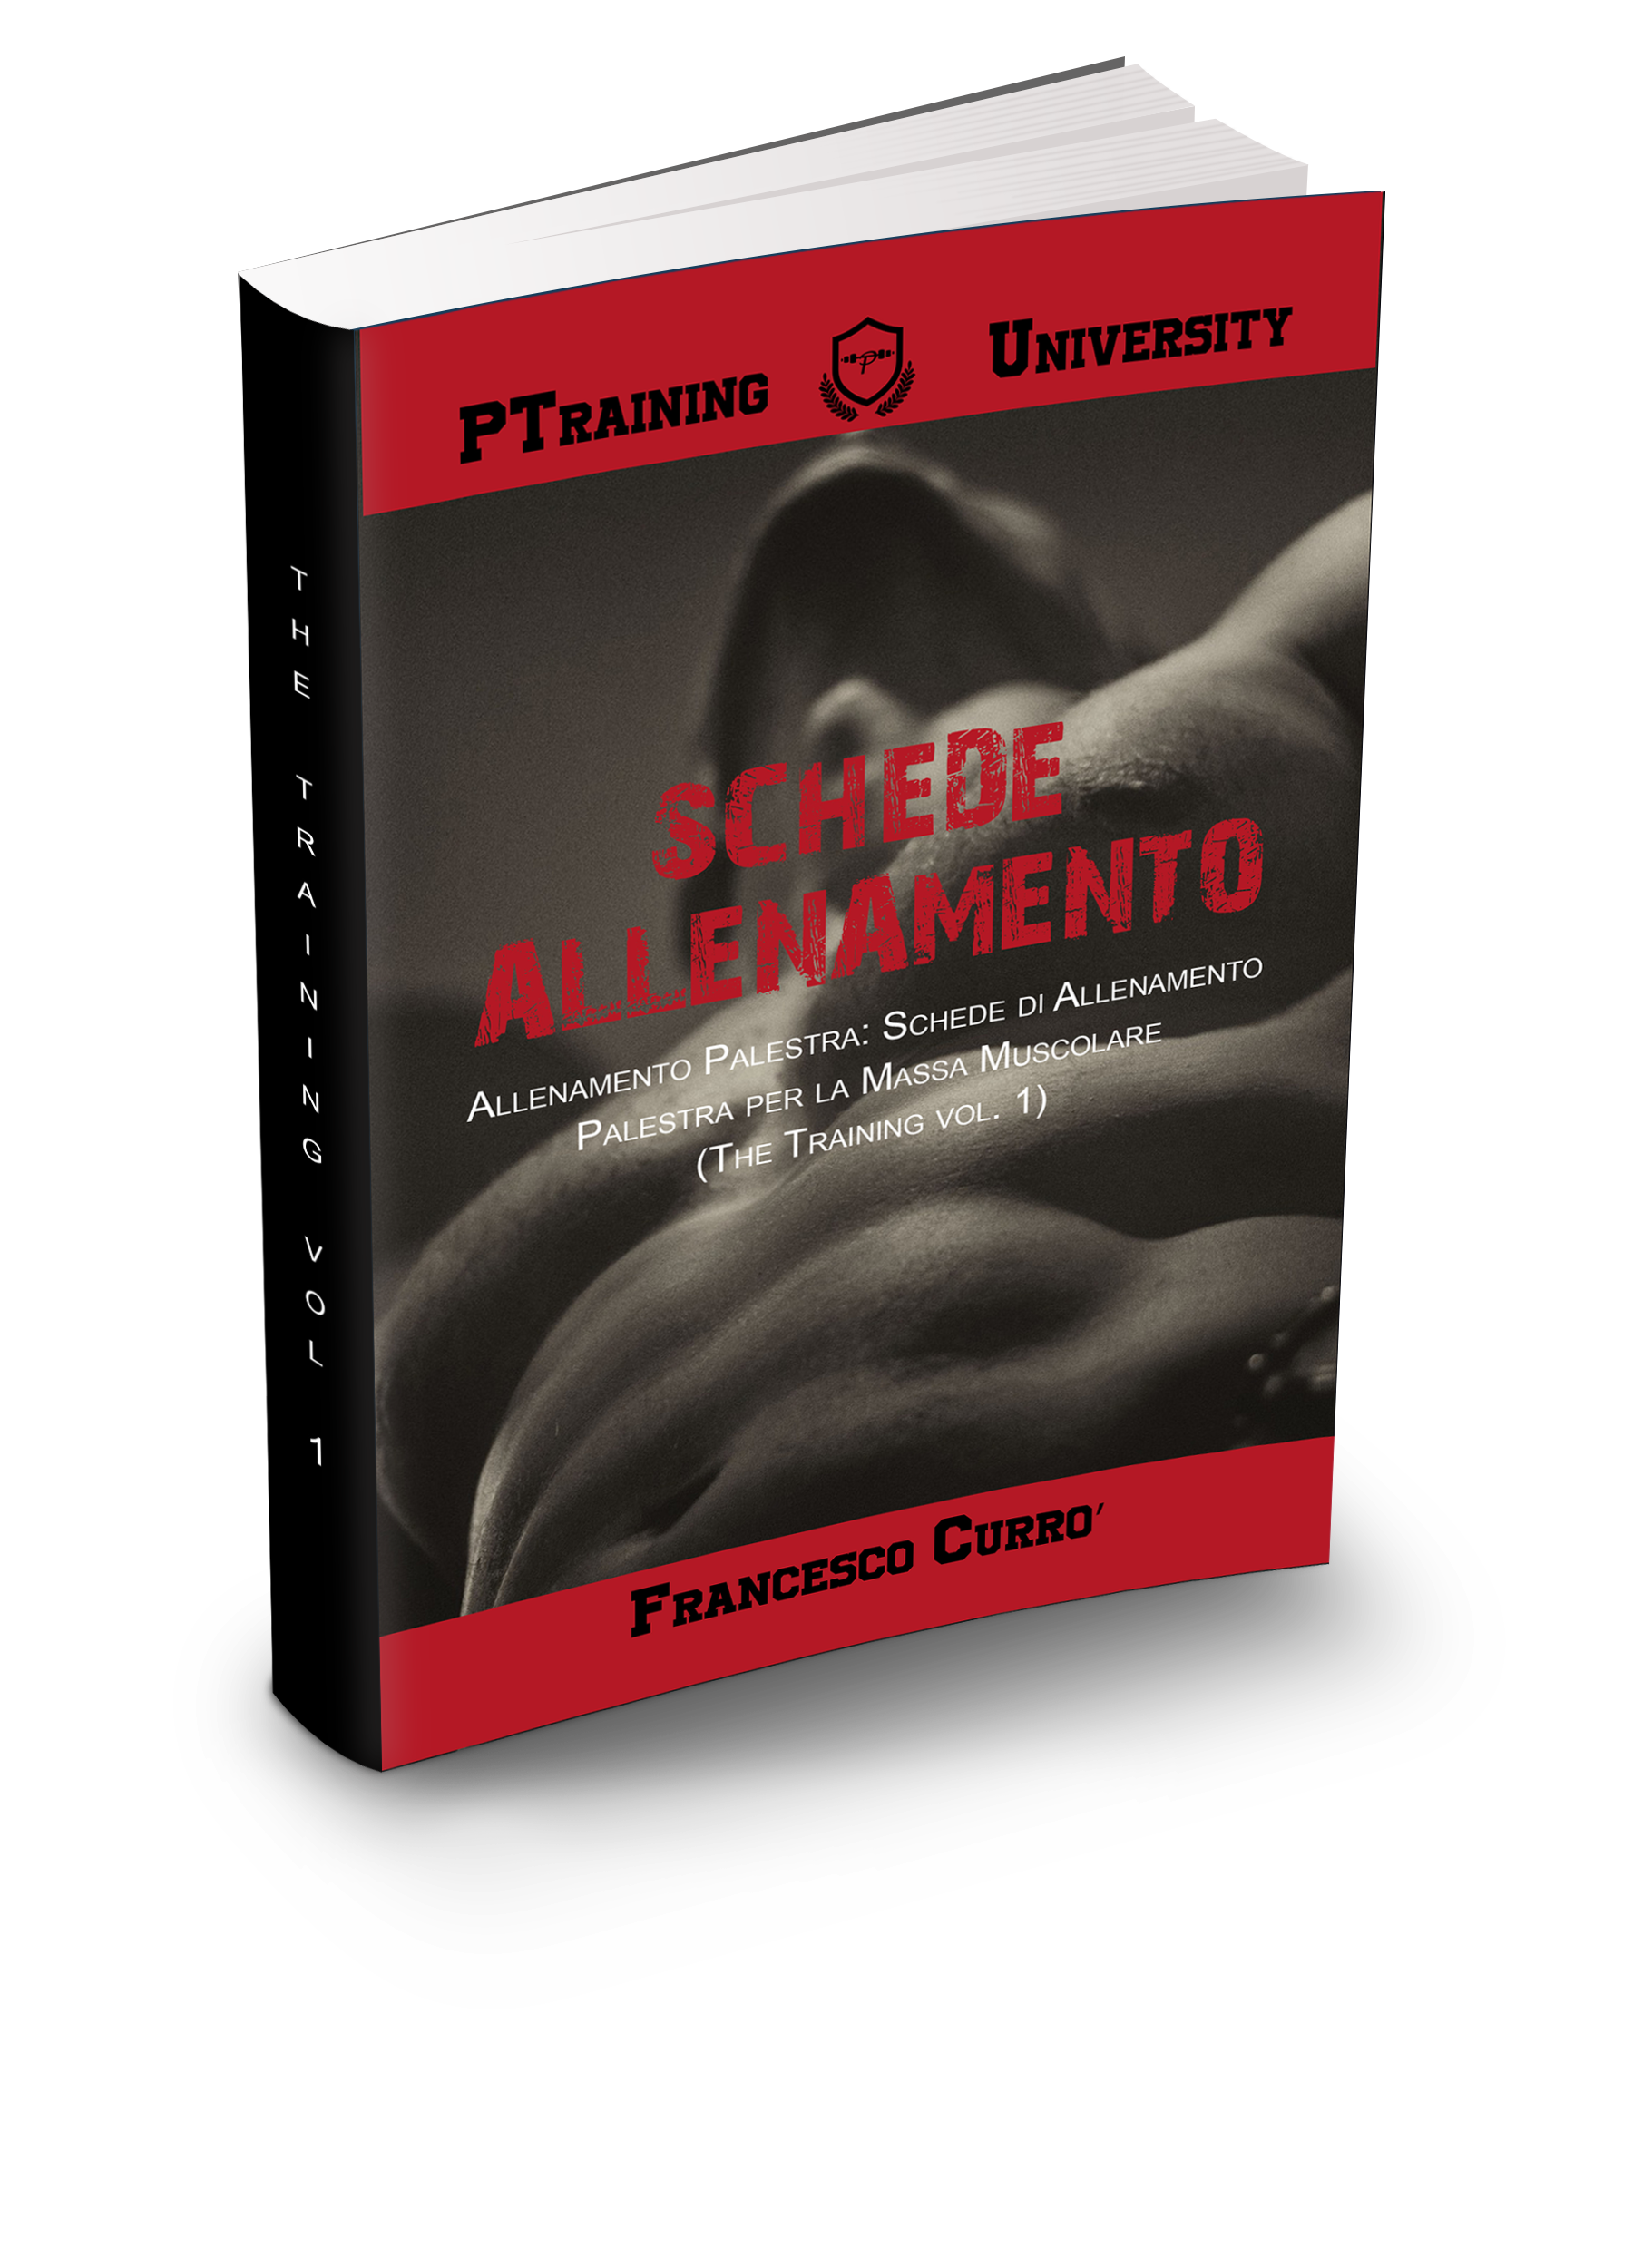 SCHEDE ALLENAMENTO PALESTRA - THE TRAINING VOL.1 3D